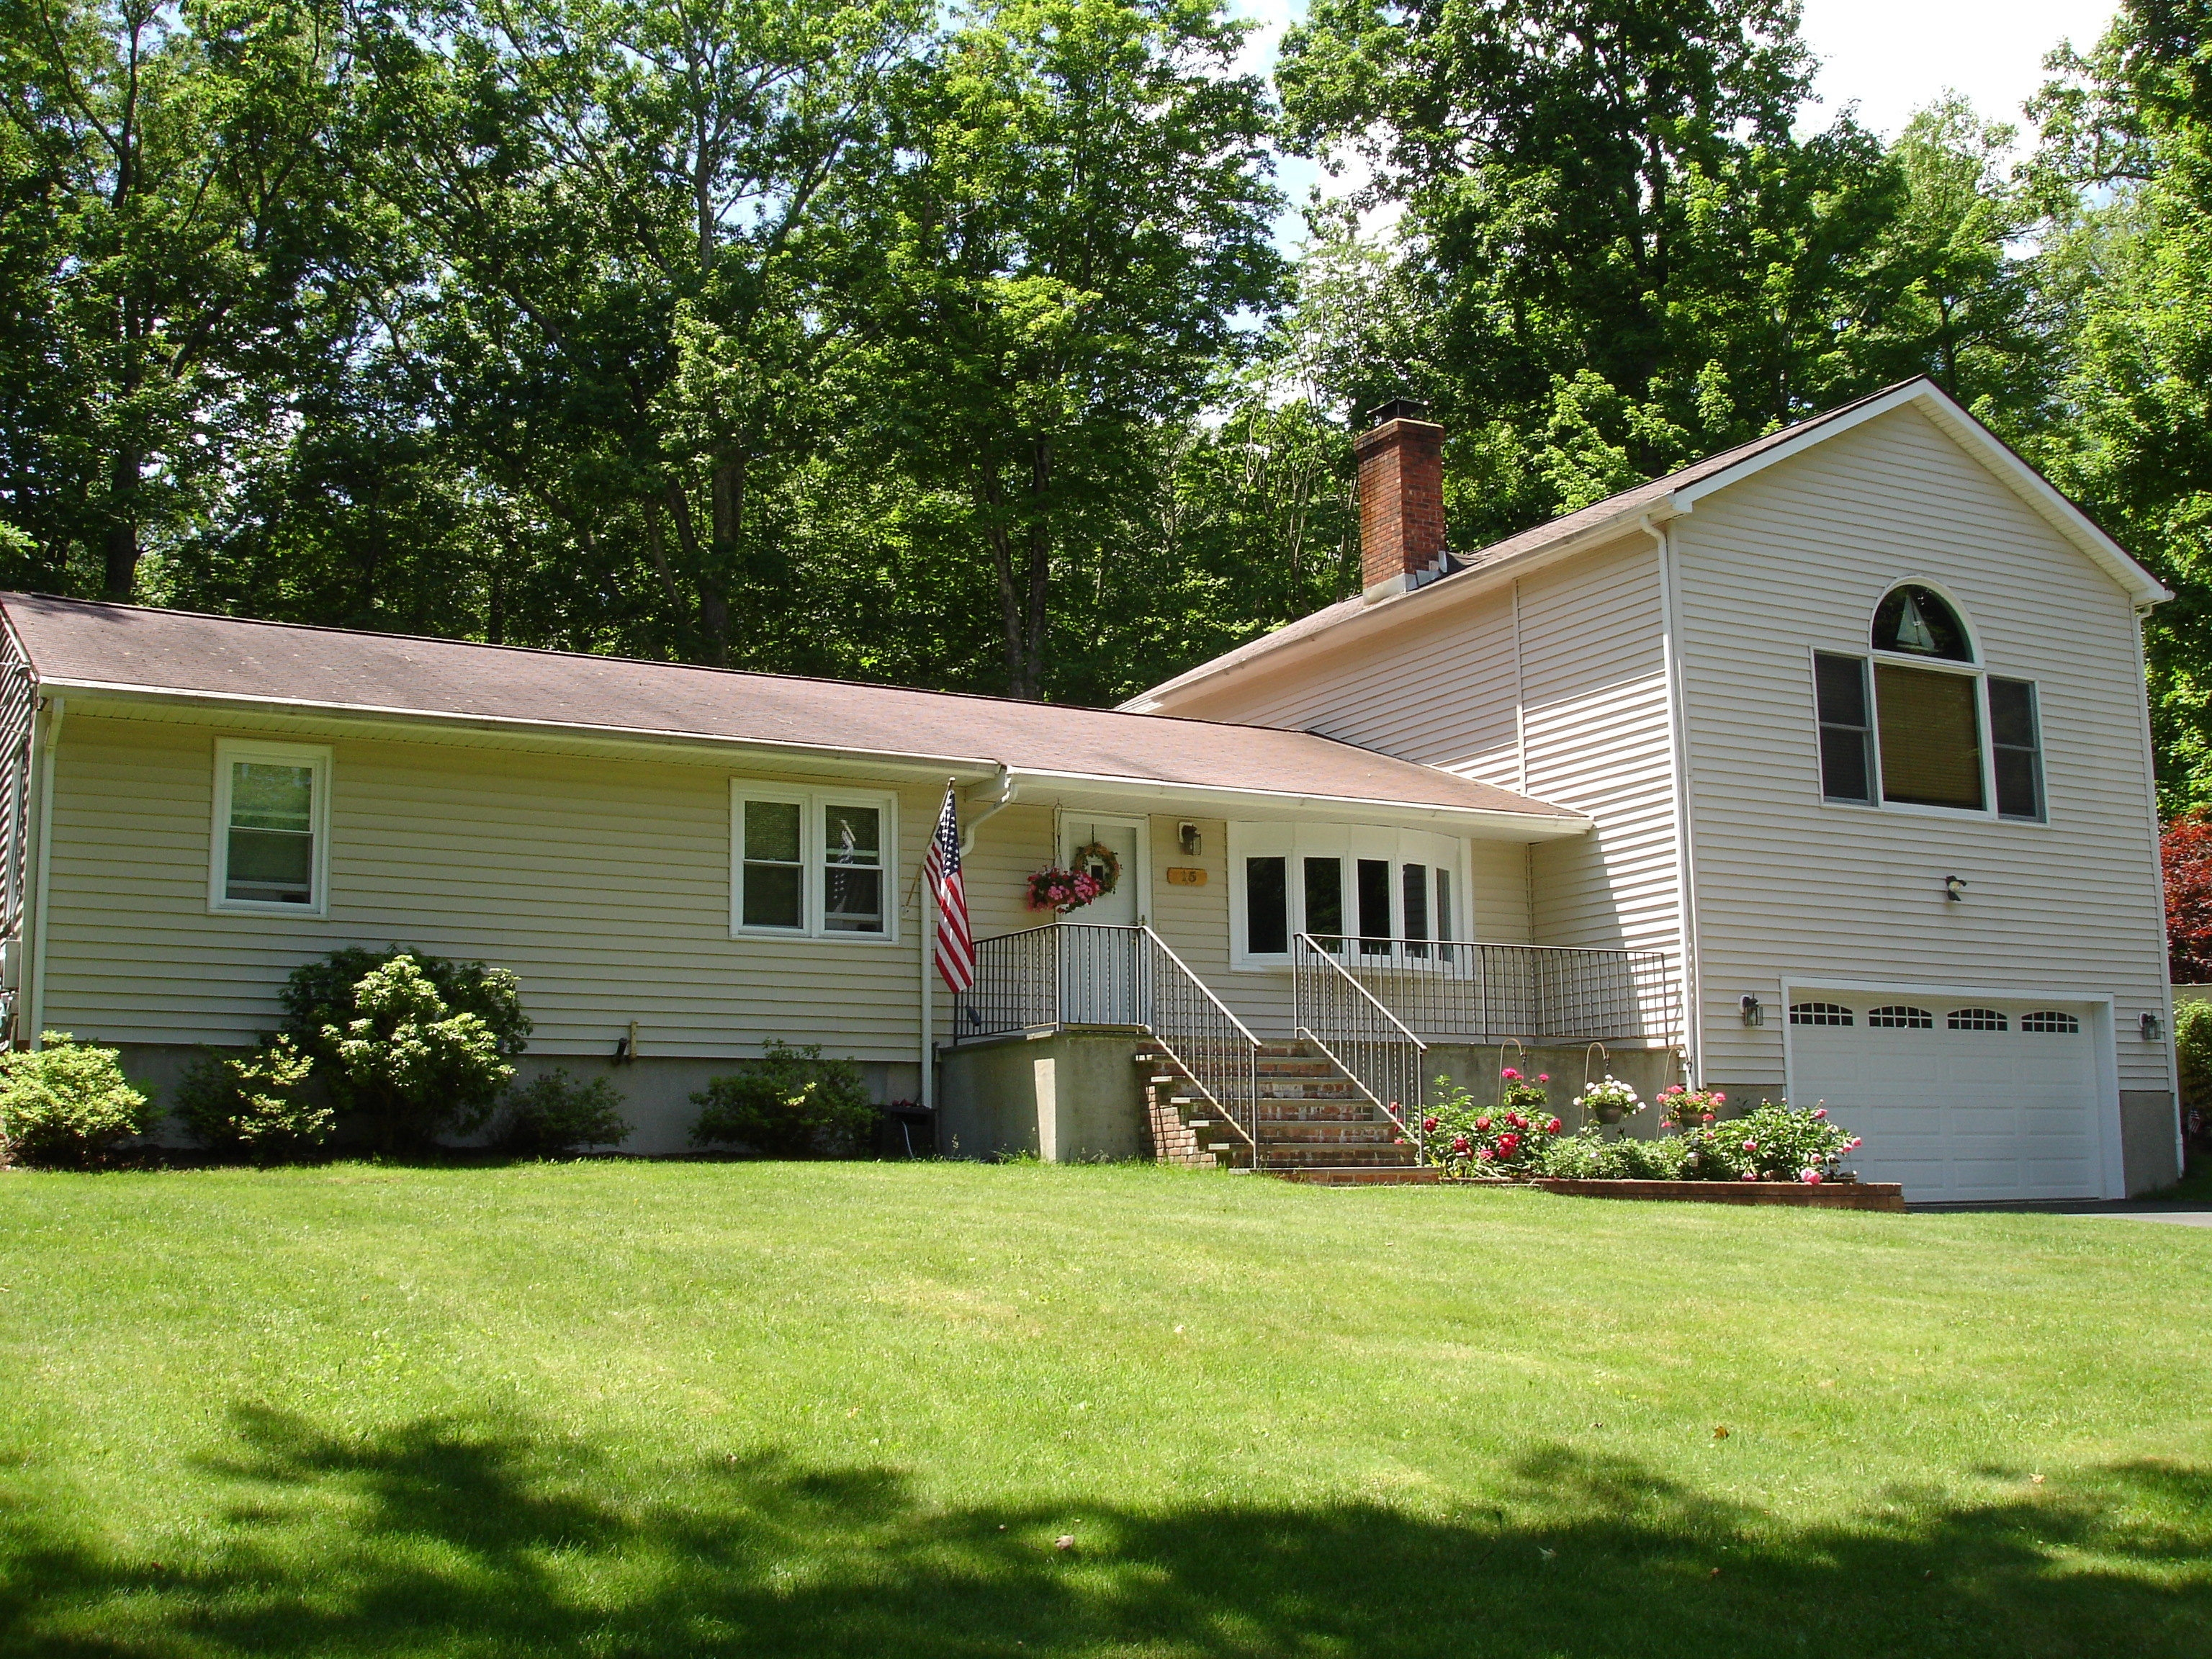 Single Family Home for Sale at Well Maintained And Updated 15 Blackwood Road Brookfield, Connecticut, 06804 United States